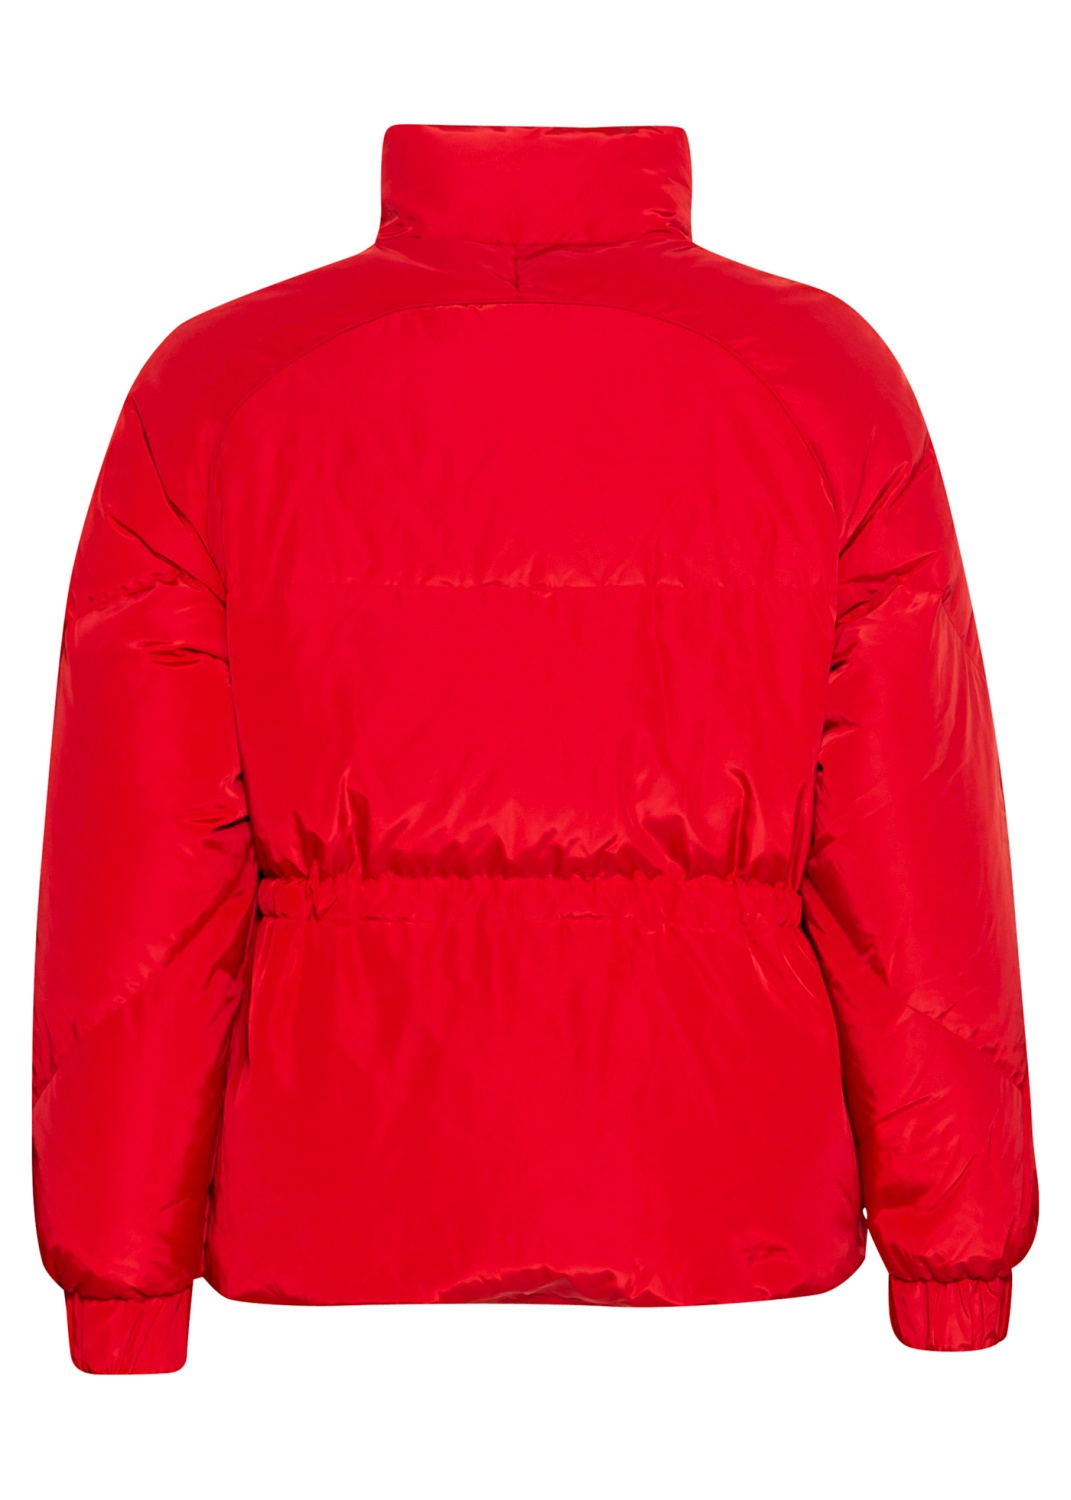 Tech Down Outerwear image number 1